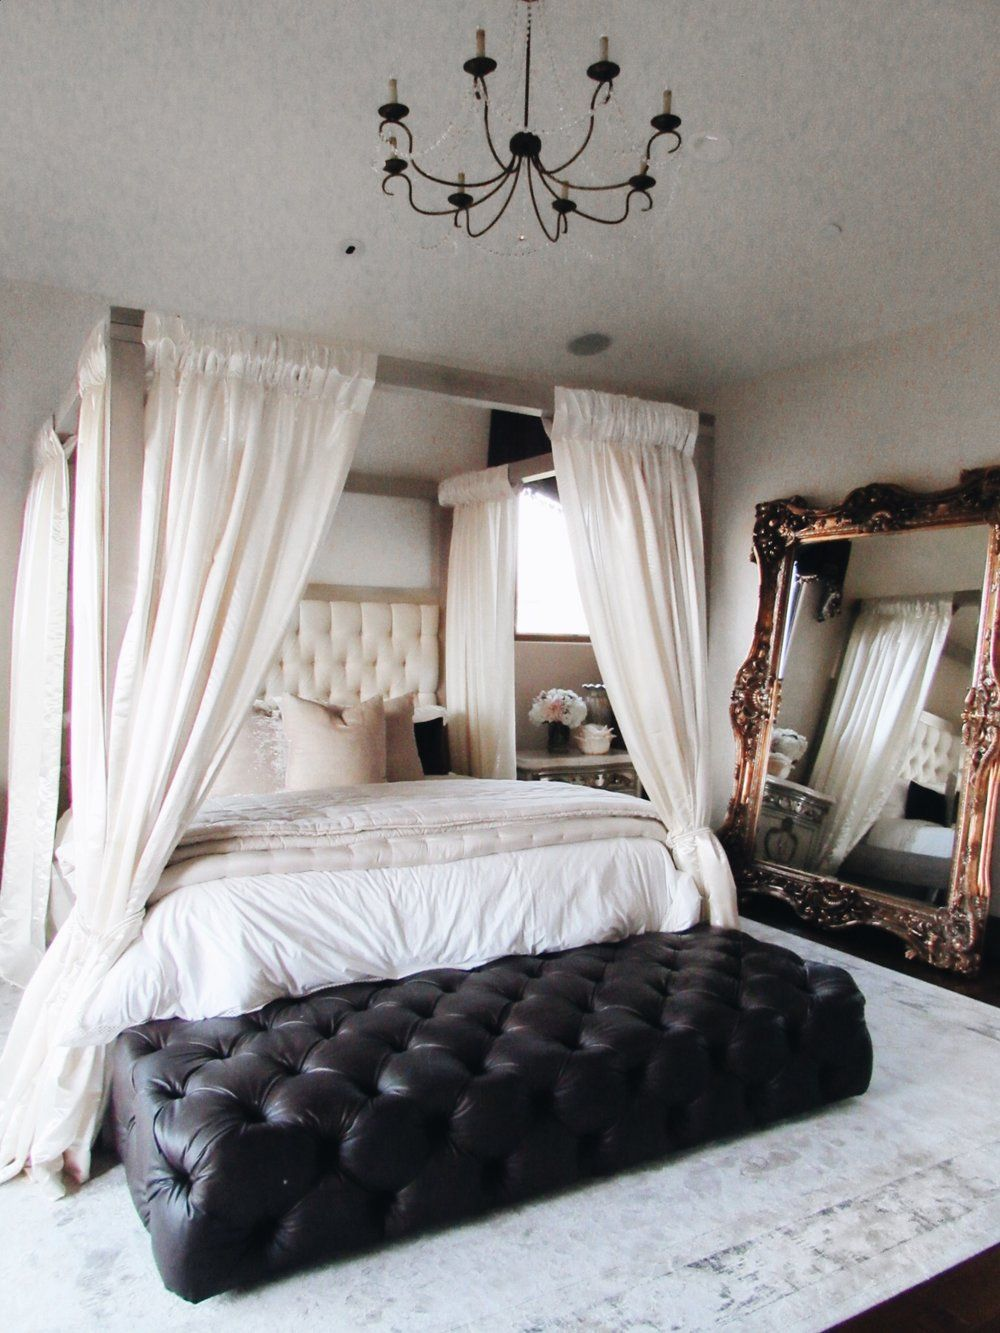 Design You Room: Interior Inspiration: Why You Need A Romantic Bedroom